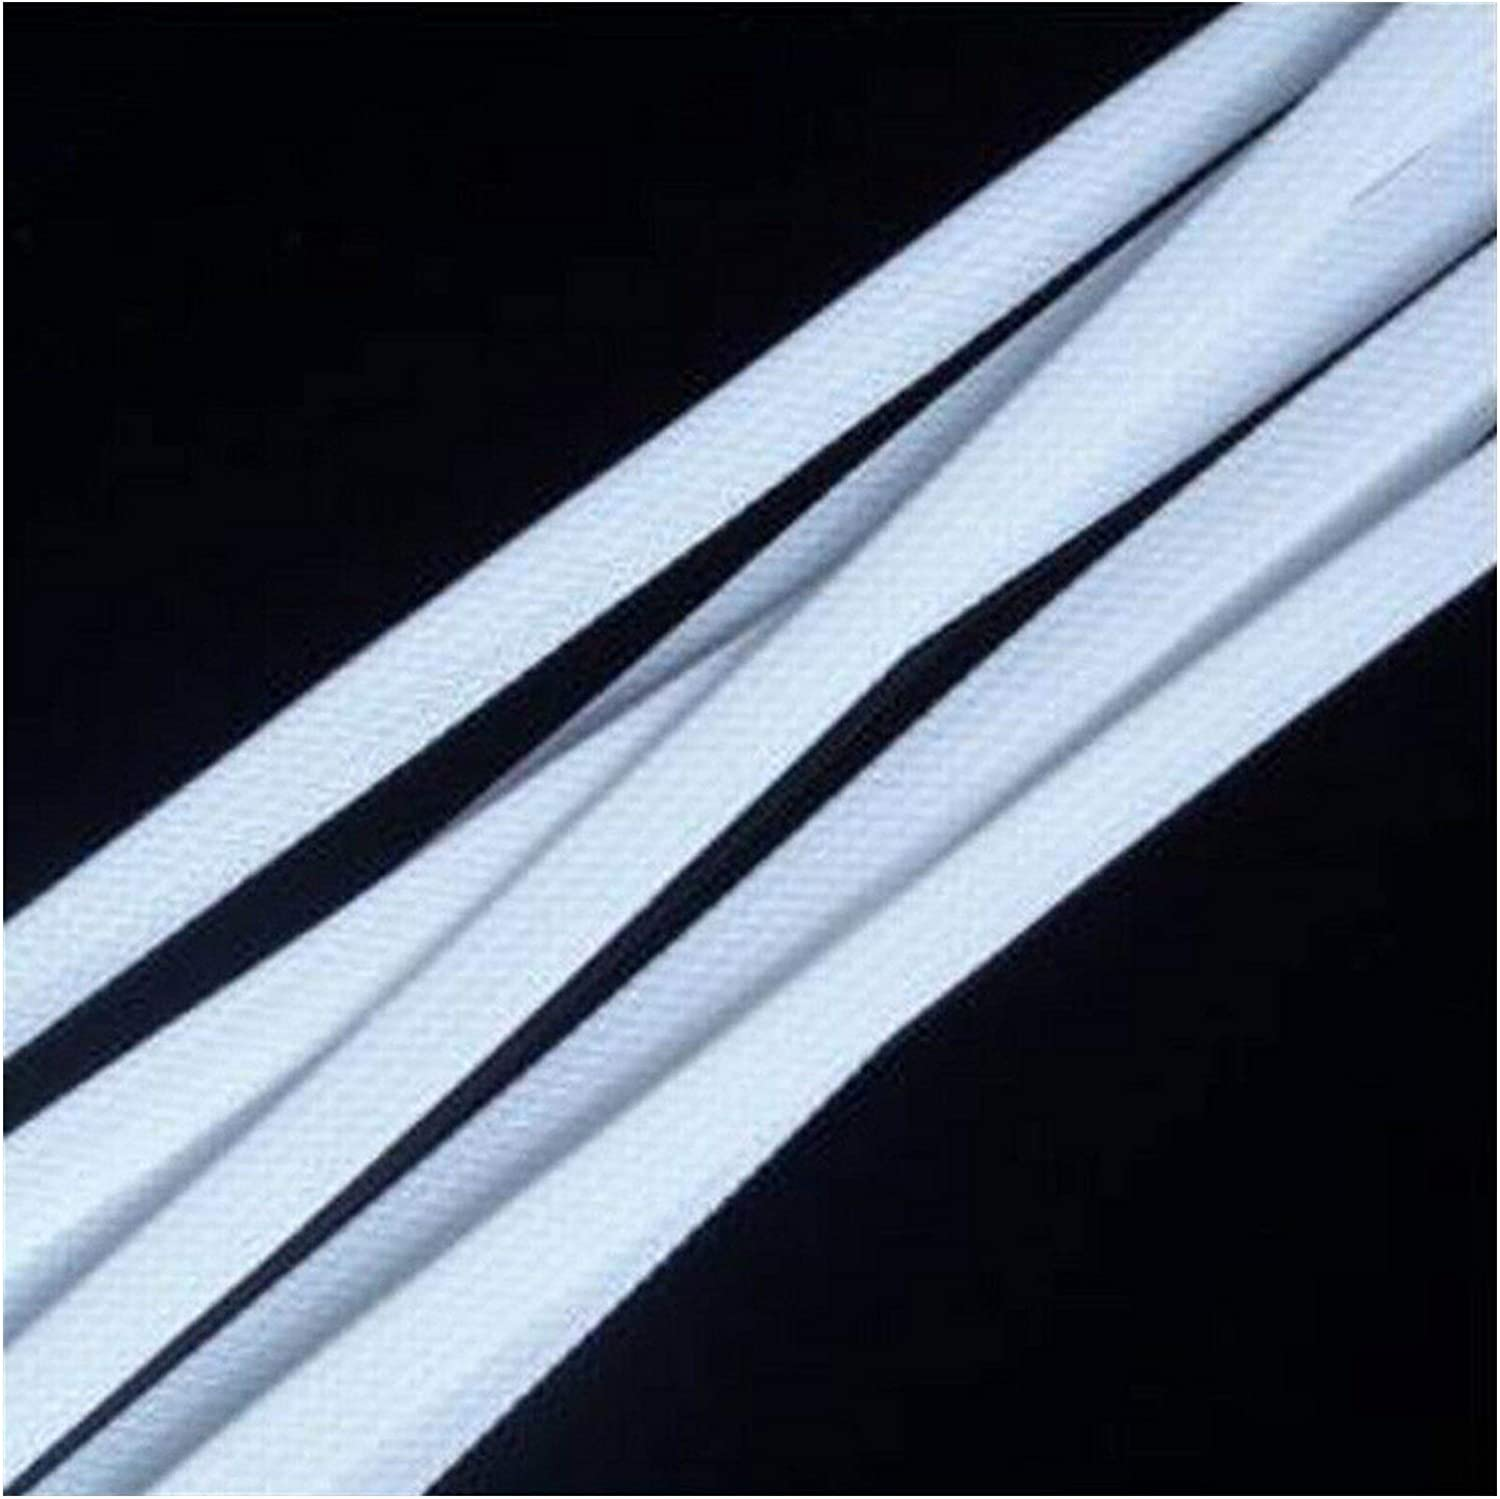 Cable Tidy Sleeves Length 1-30Meters 3-30mm Mes Industry No. 1 Sale Special Price White Snakeskin